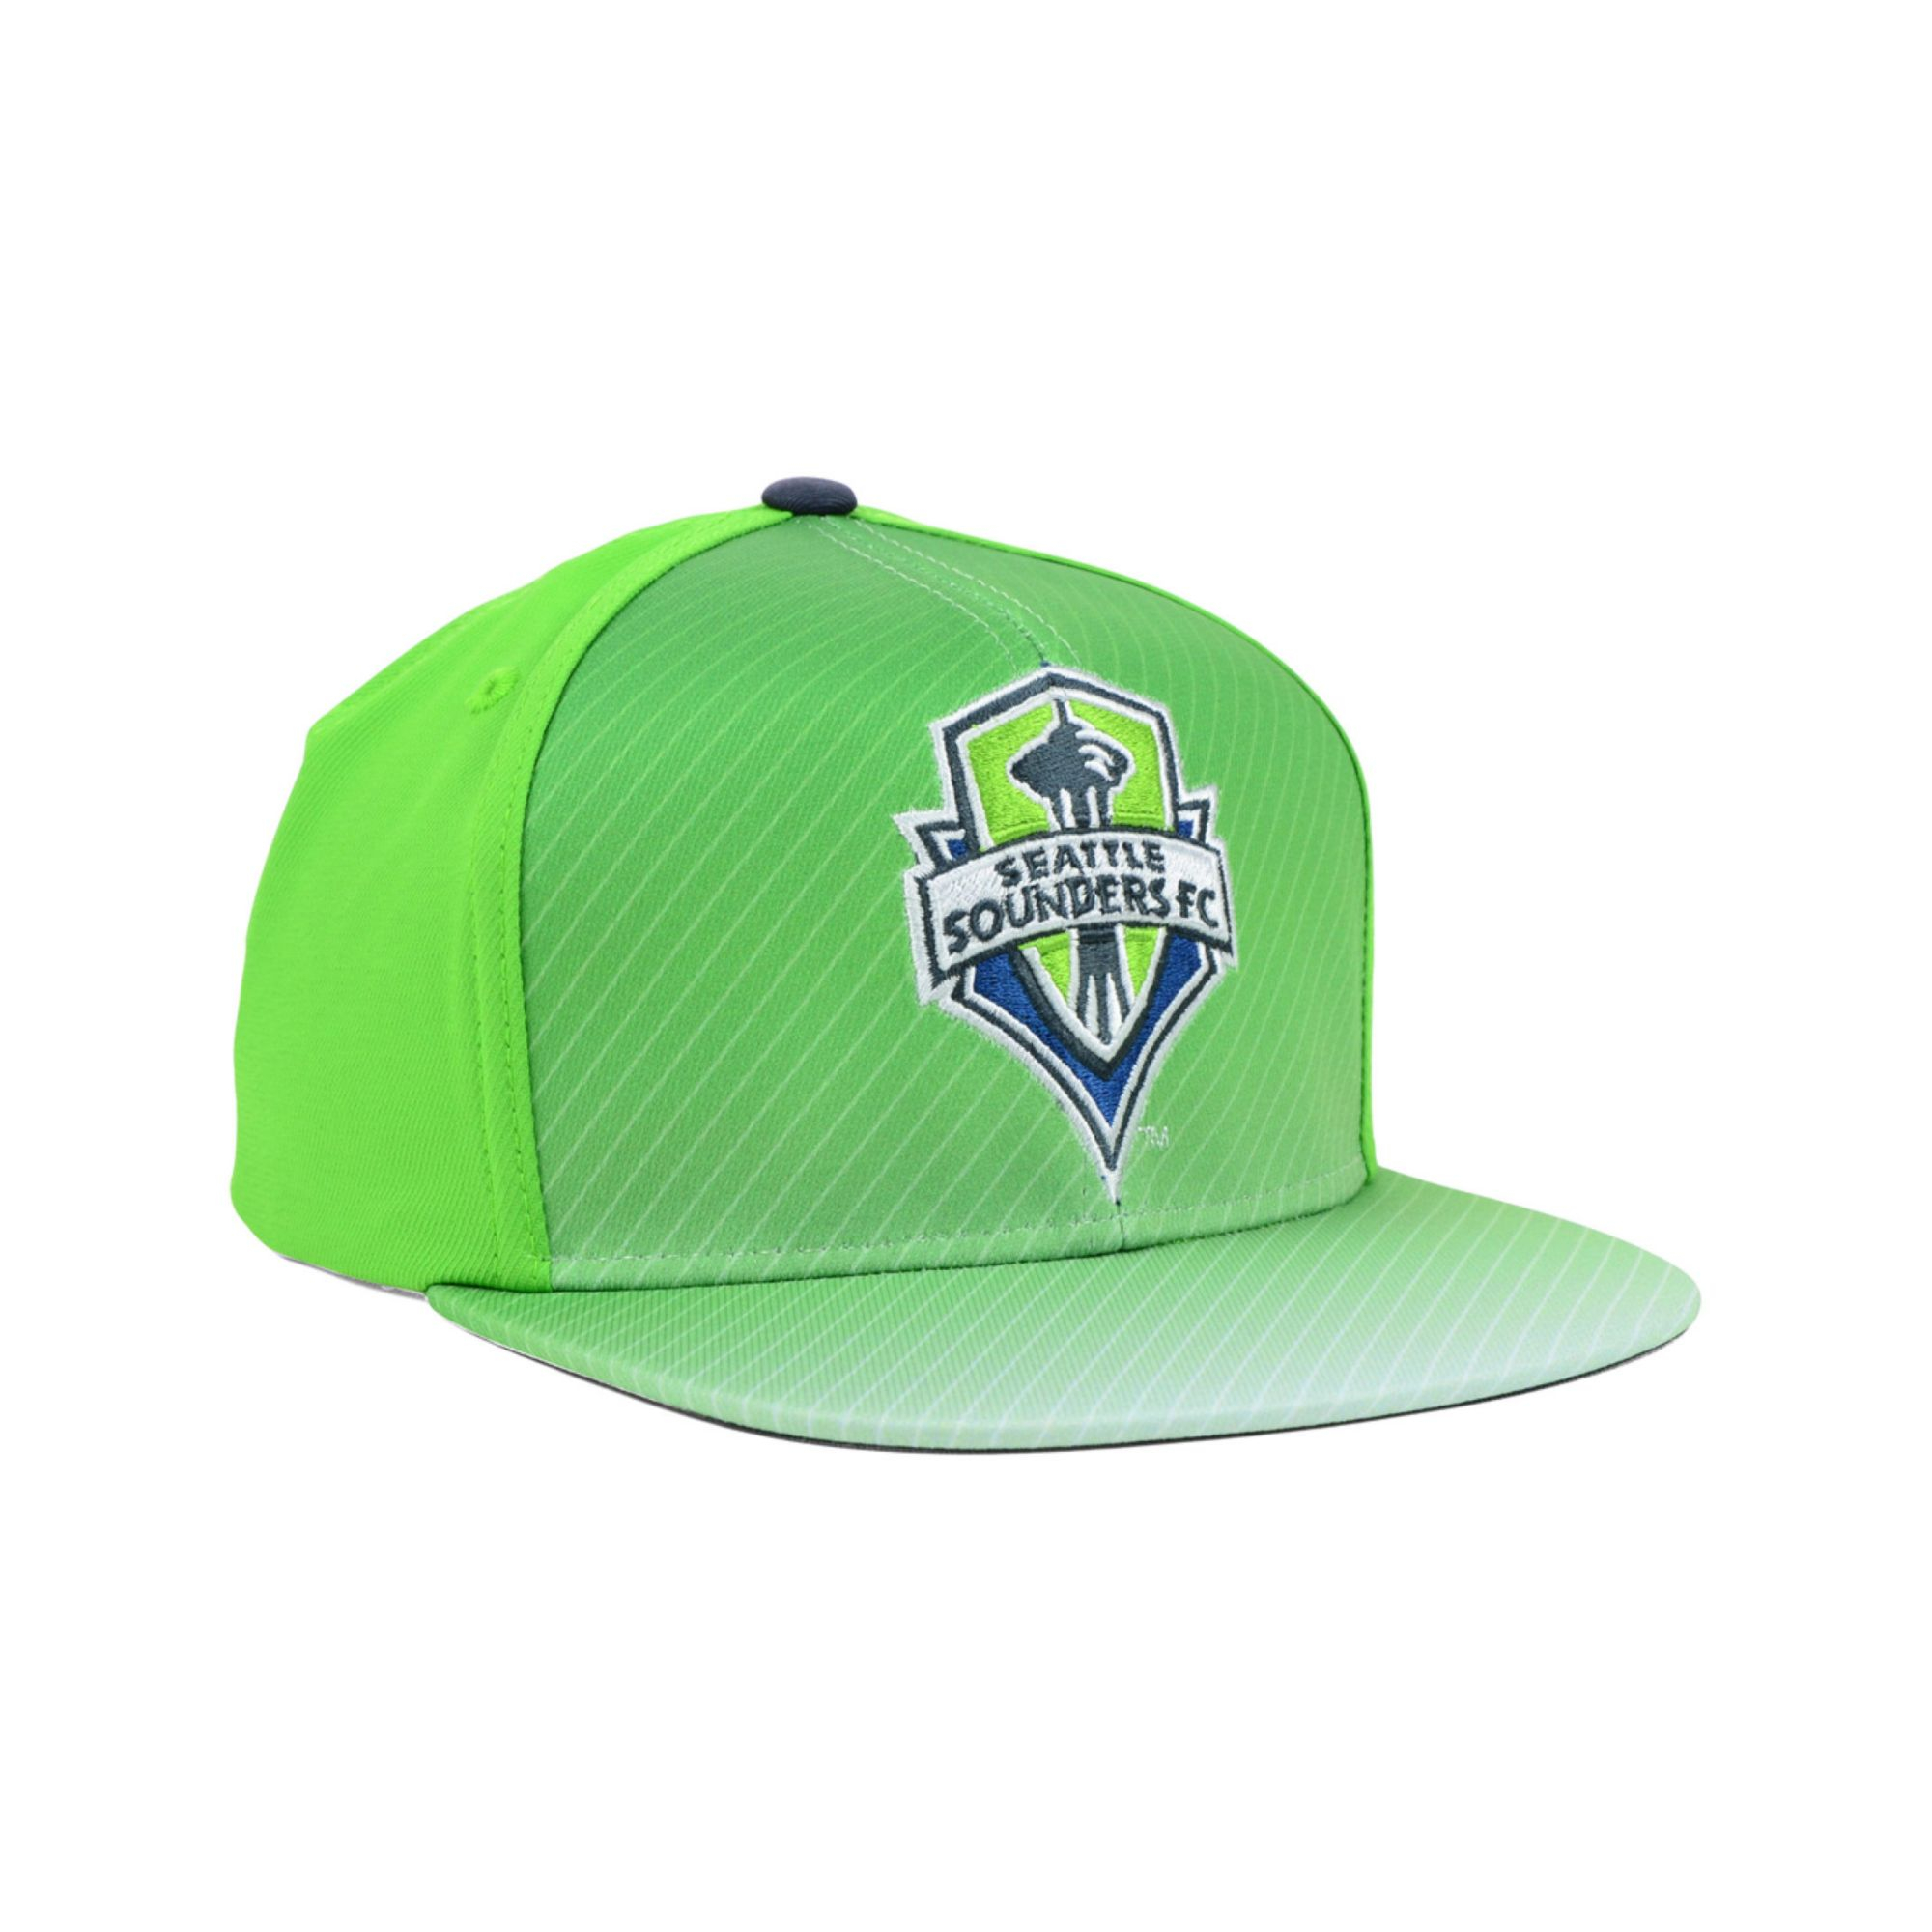 fa2aa8aac58 Lyst - Adidas Seattle Sounders Fc Mls Player Snapback Cap in Green ...